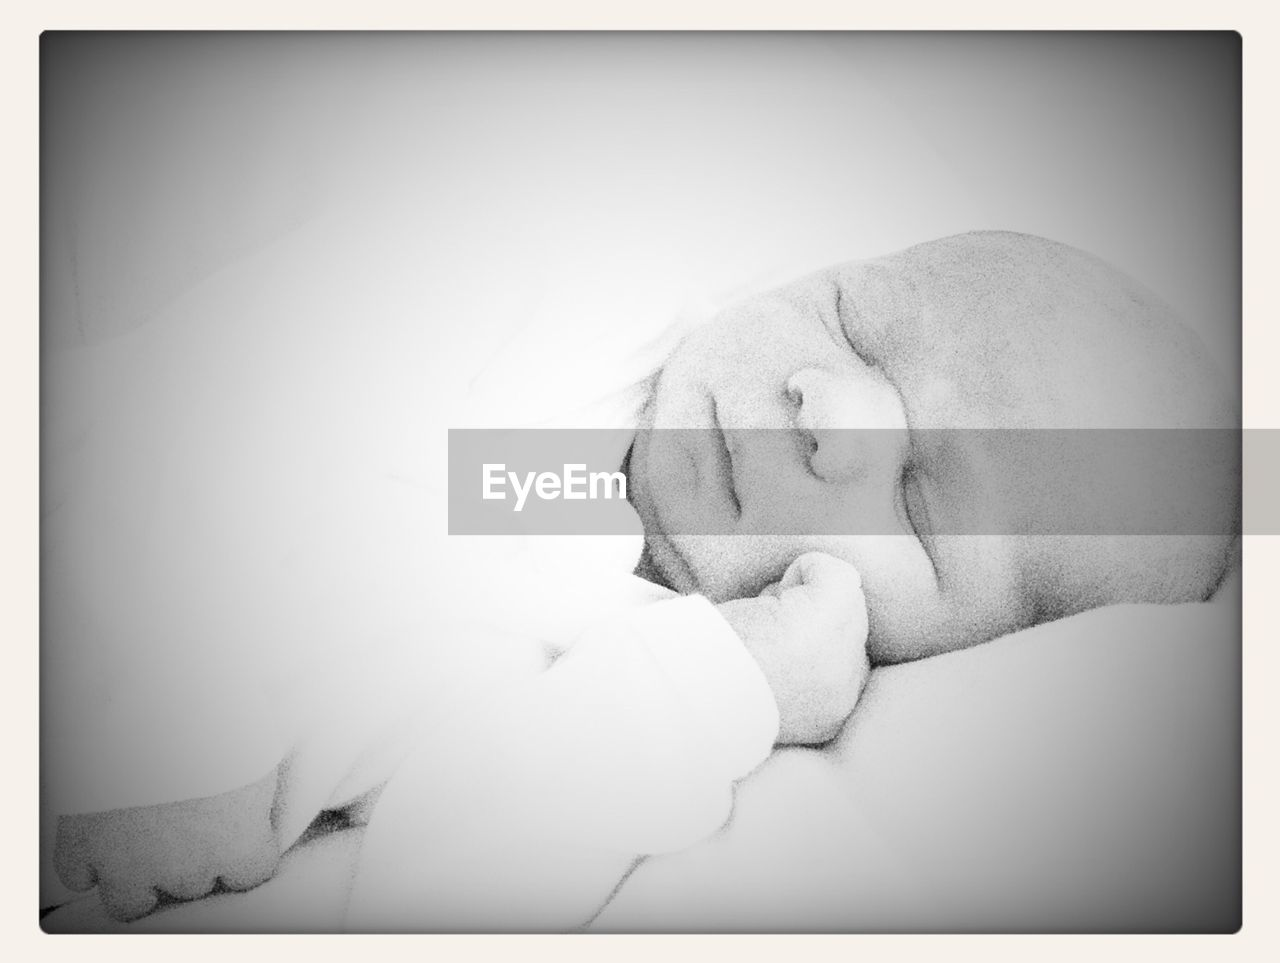 sleeping, eyes closed, real people, relaxation, one person, men, leisure activity, indoors, bed, lying down, white background, close-up, day, people